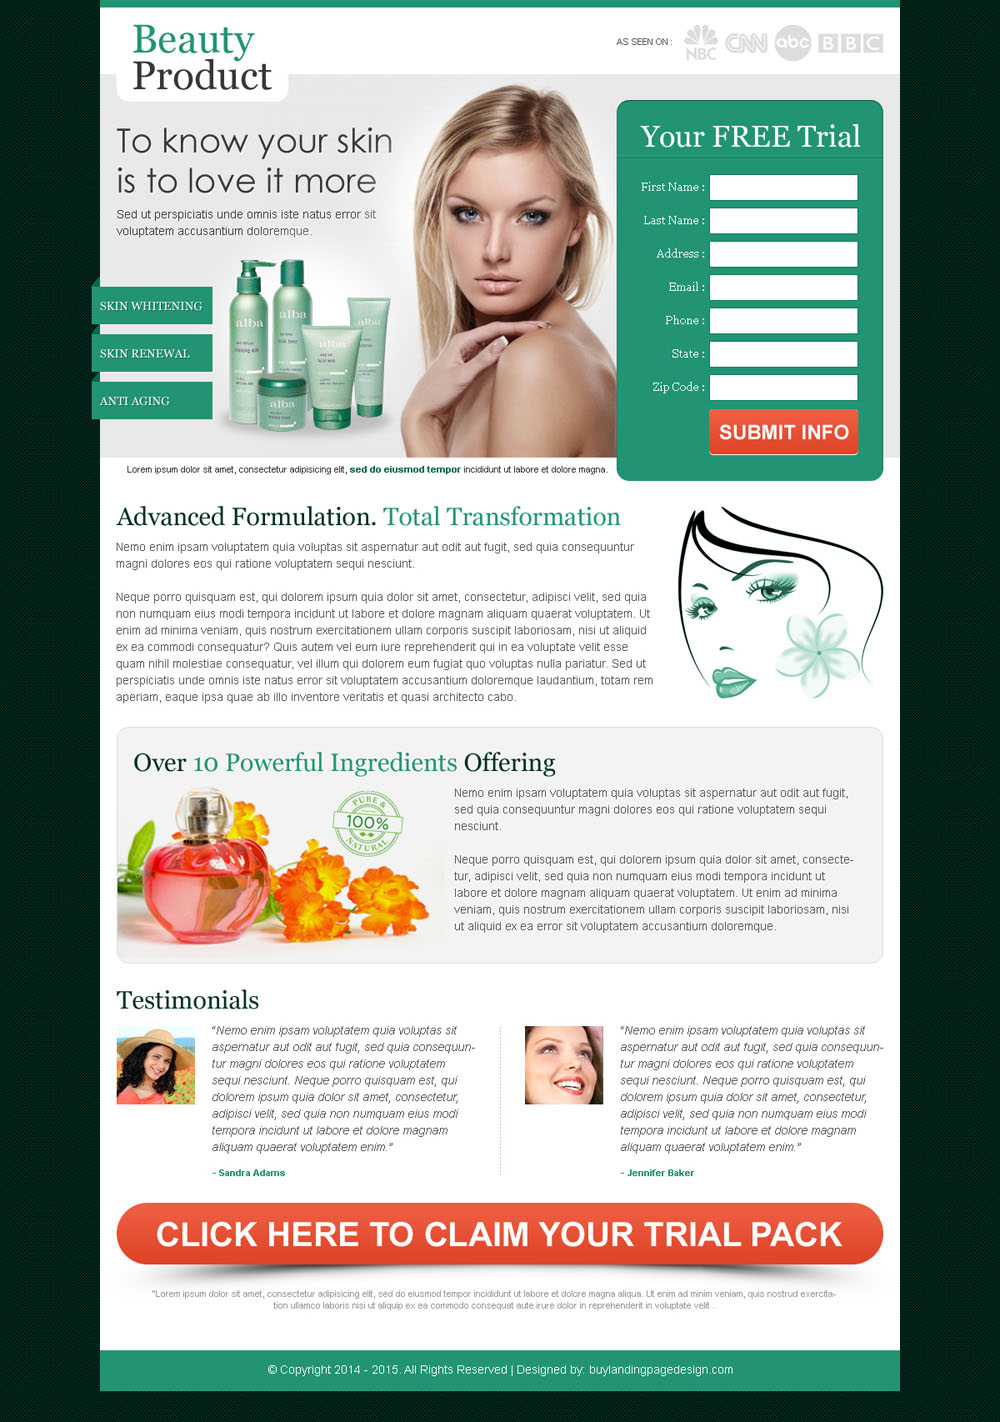 advance-beauty-product-lead-capture-landing-page-design-templates-013